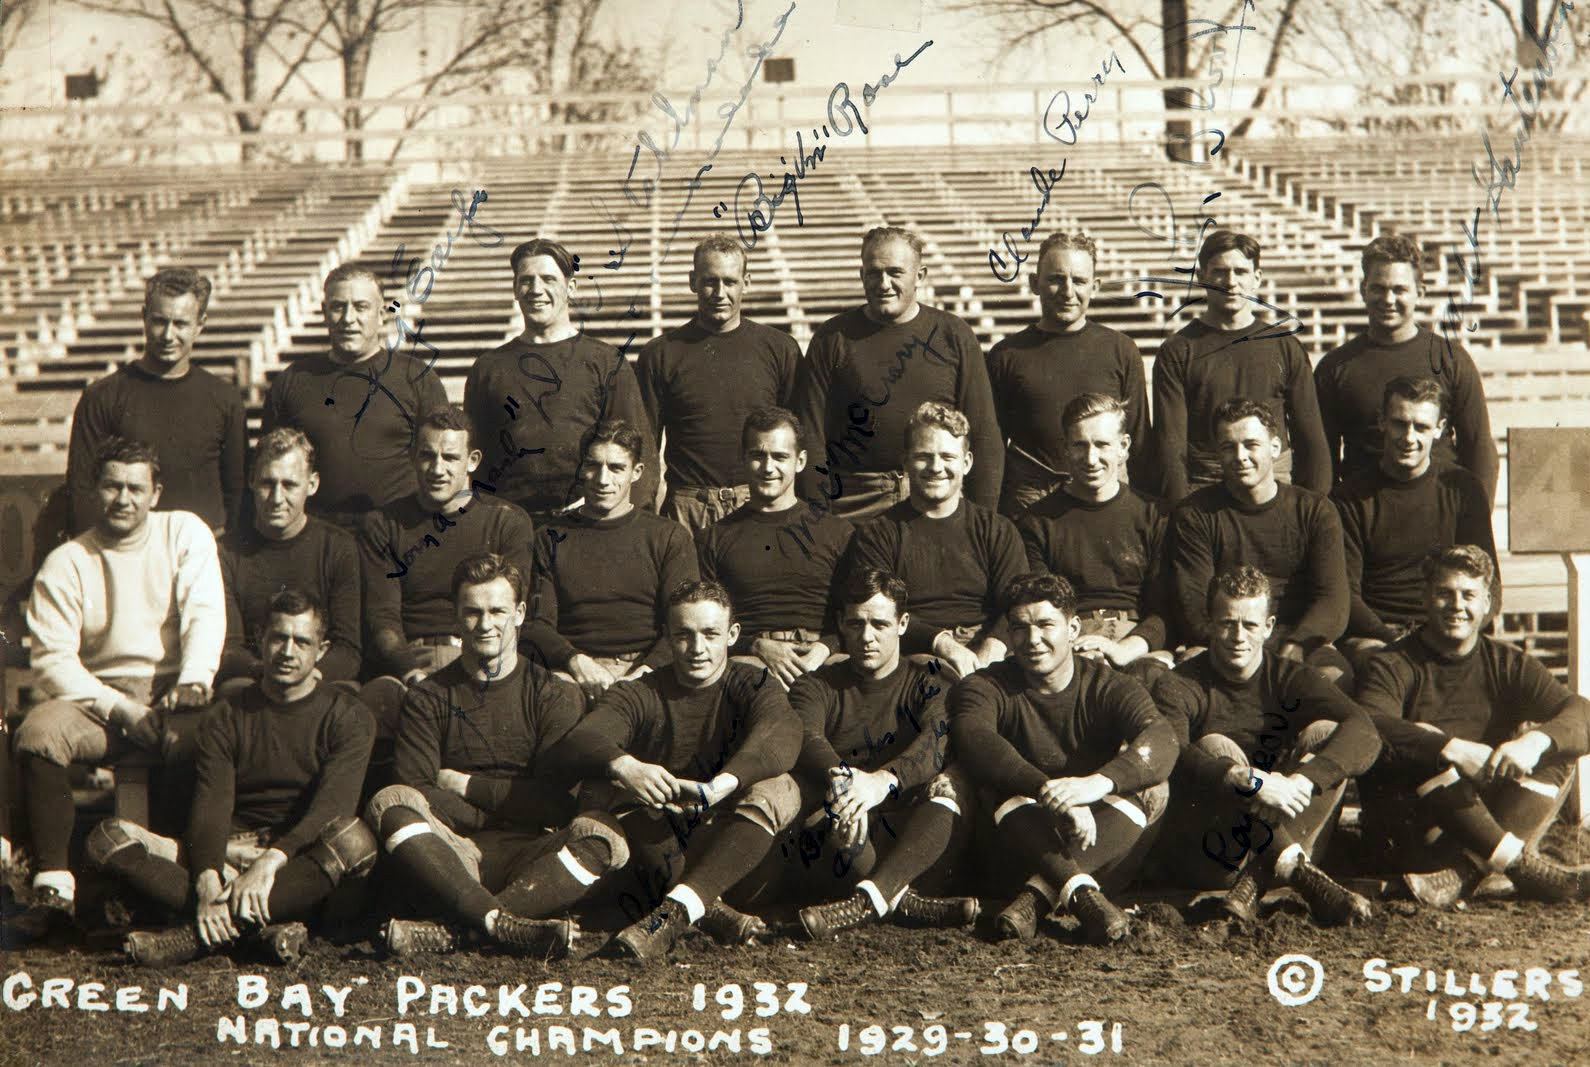 1932 packers team photo